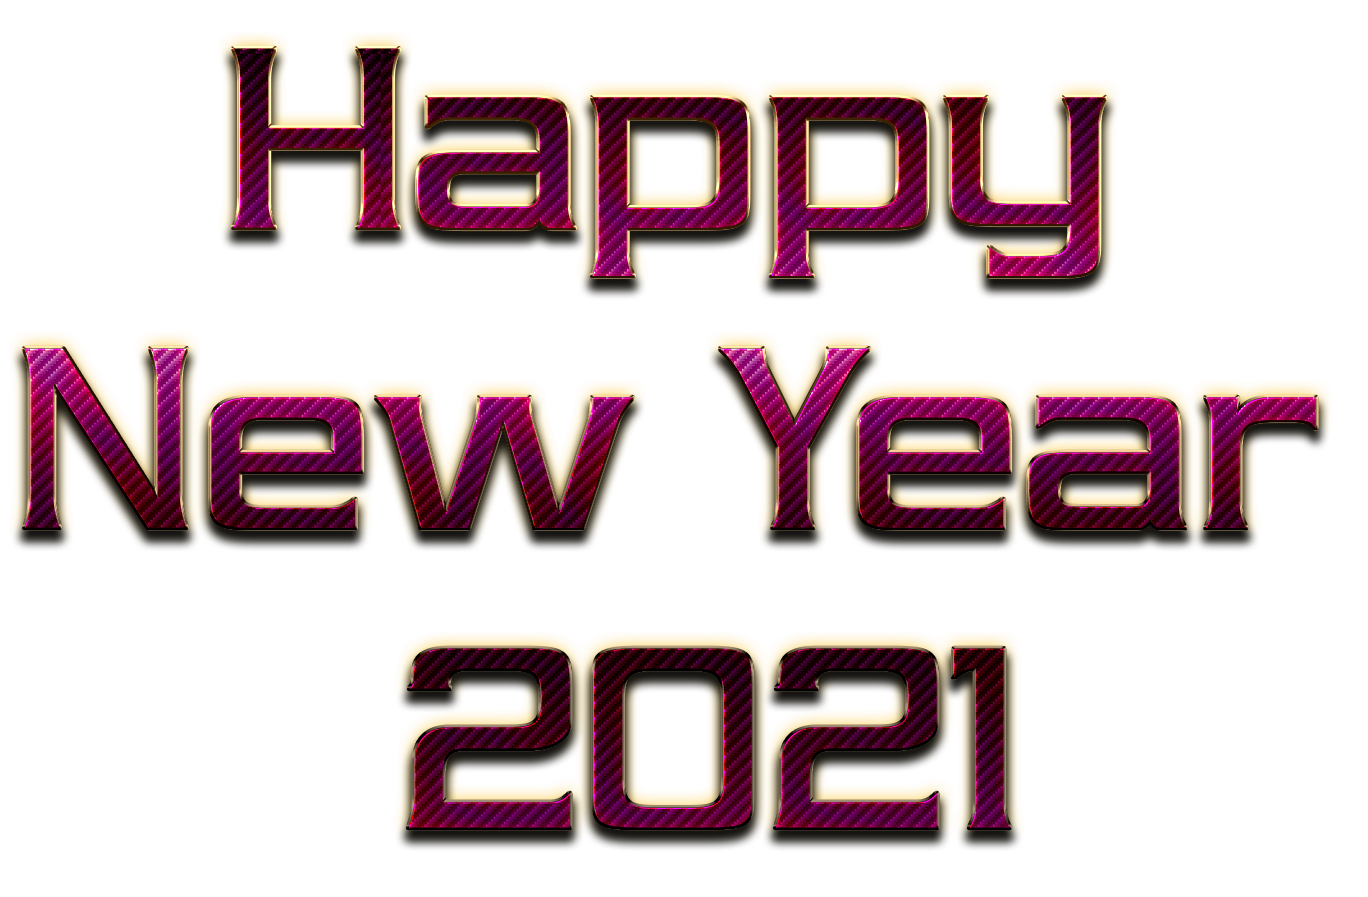 2021 happy new year png transparent Images #41560